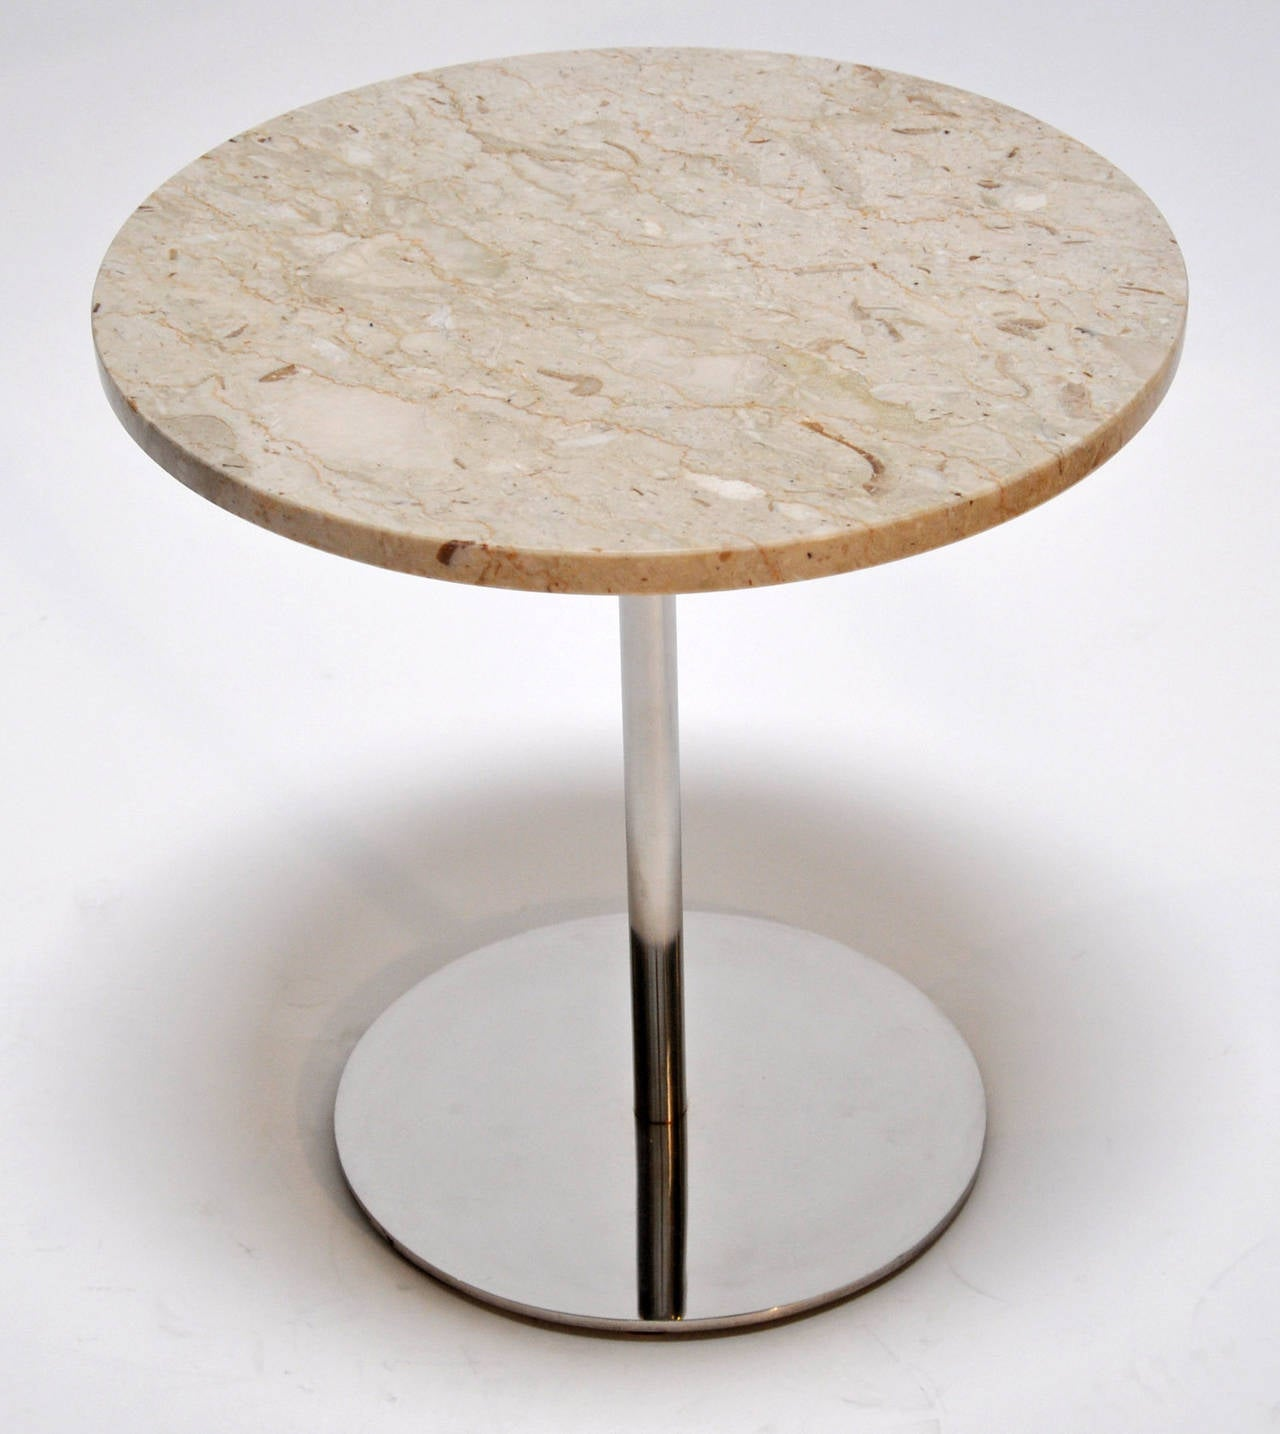 Marble and polished steel side tables. Top quality design and construction. These are heavy and solid. Price is for the pair.